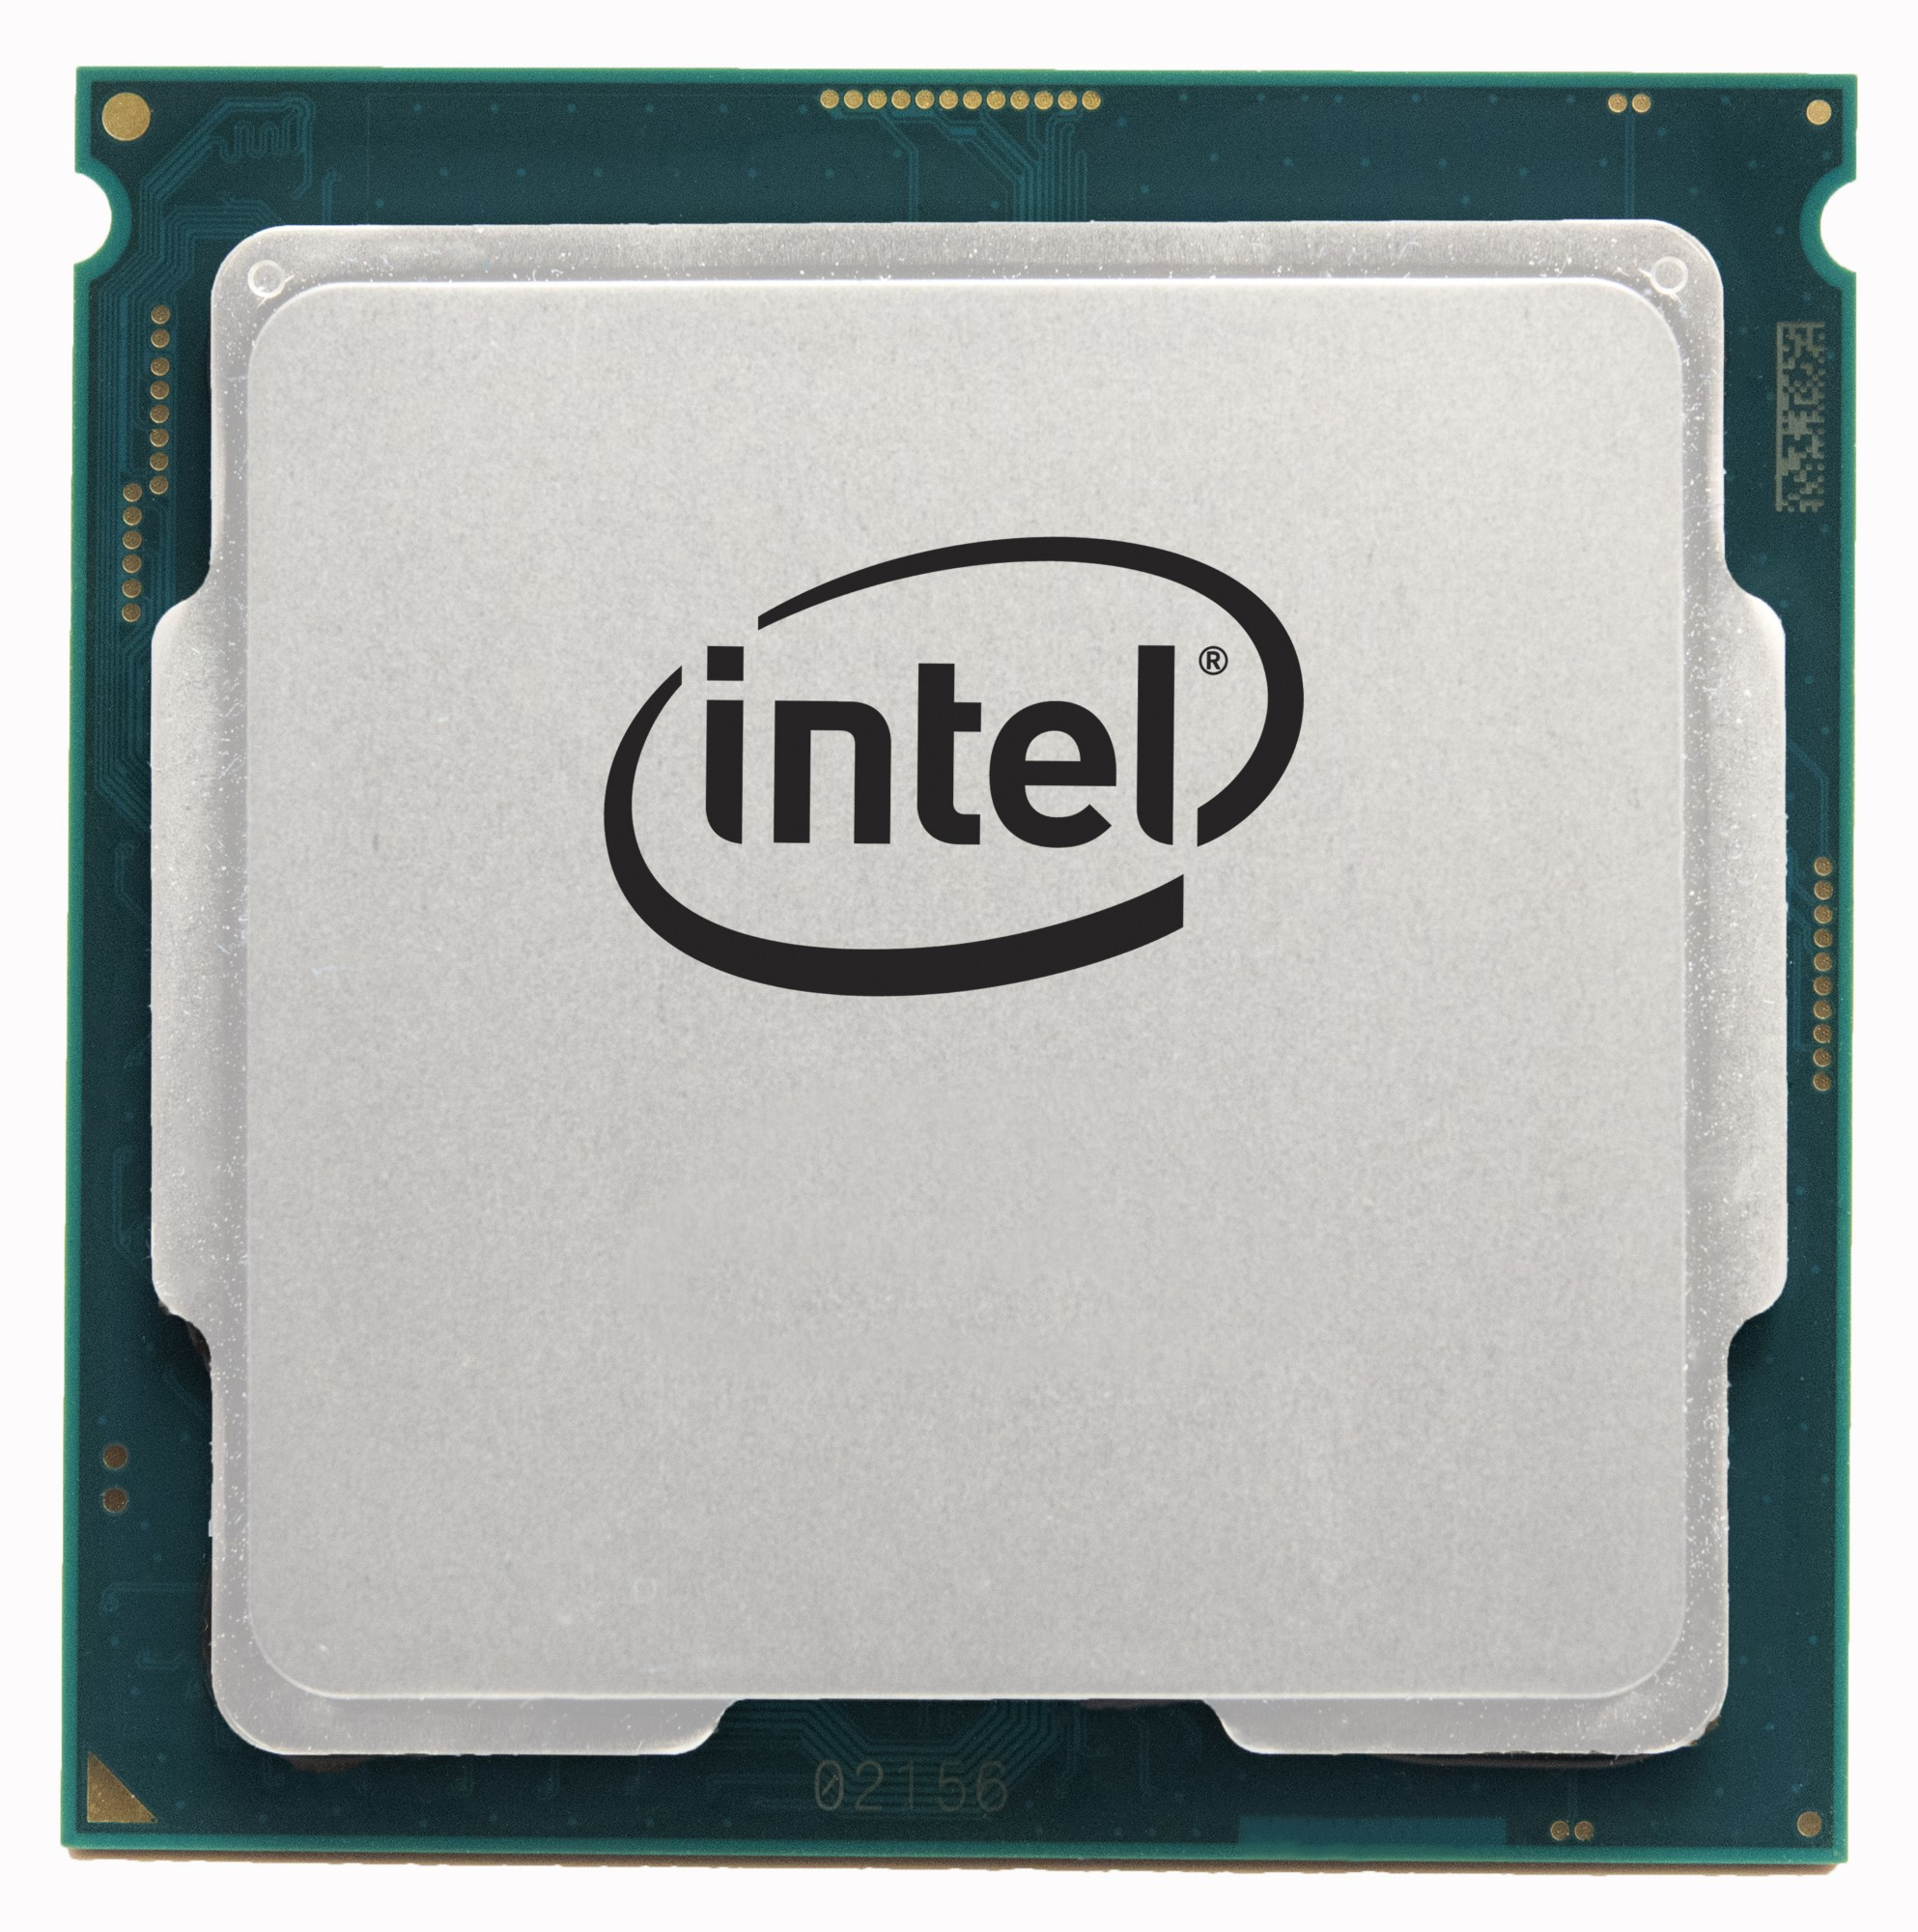 INTEL CM8068403874404 CORE I5-9600K PROCESSOR 3.7 GHZ 9 MB SMART CACHE (TRAY ONLY PROCESSOR)